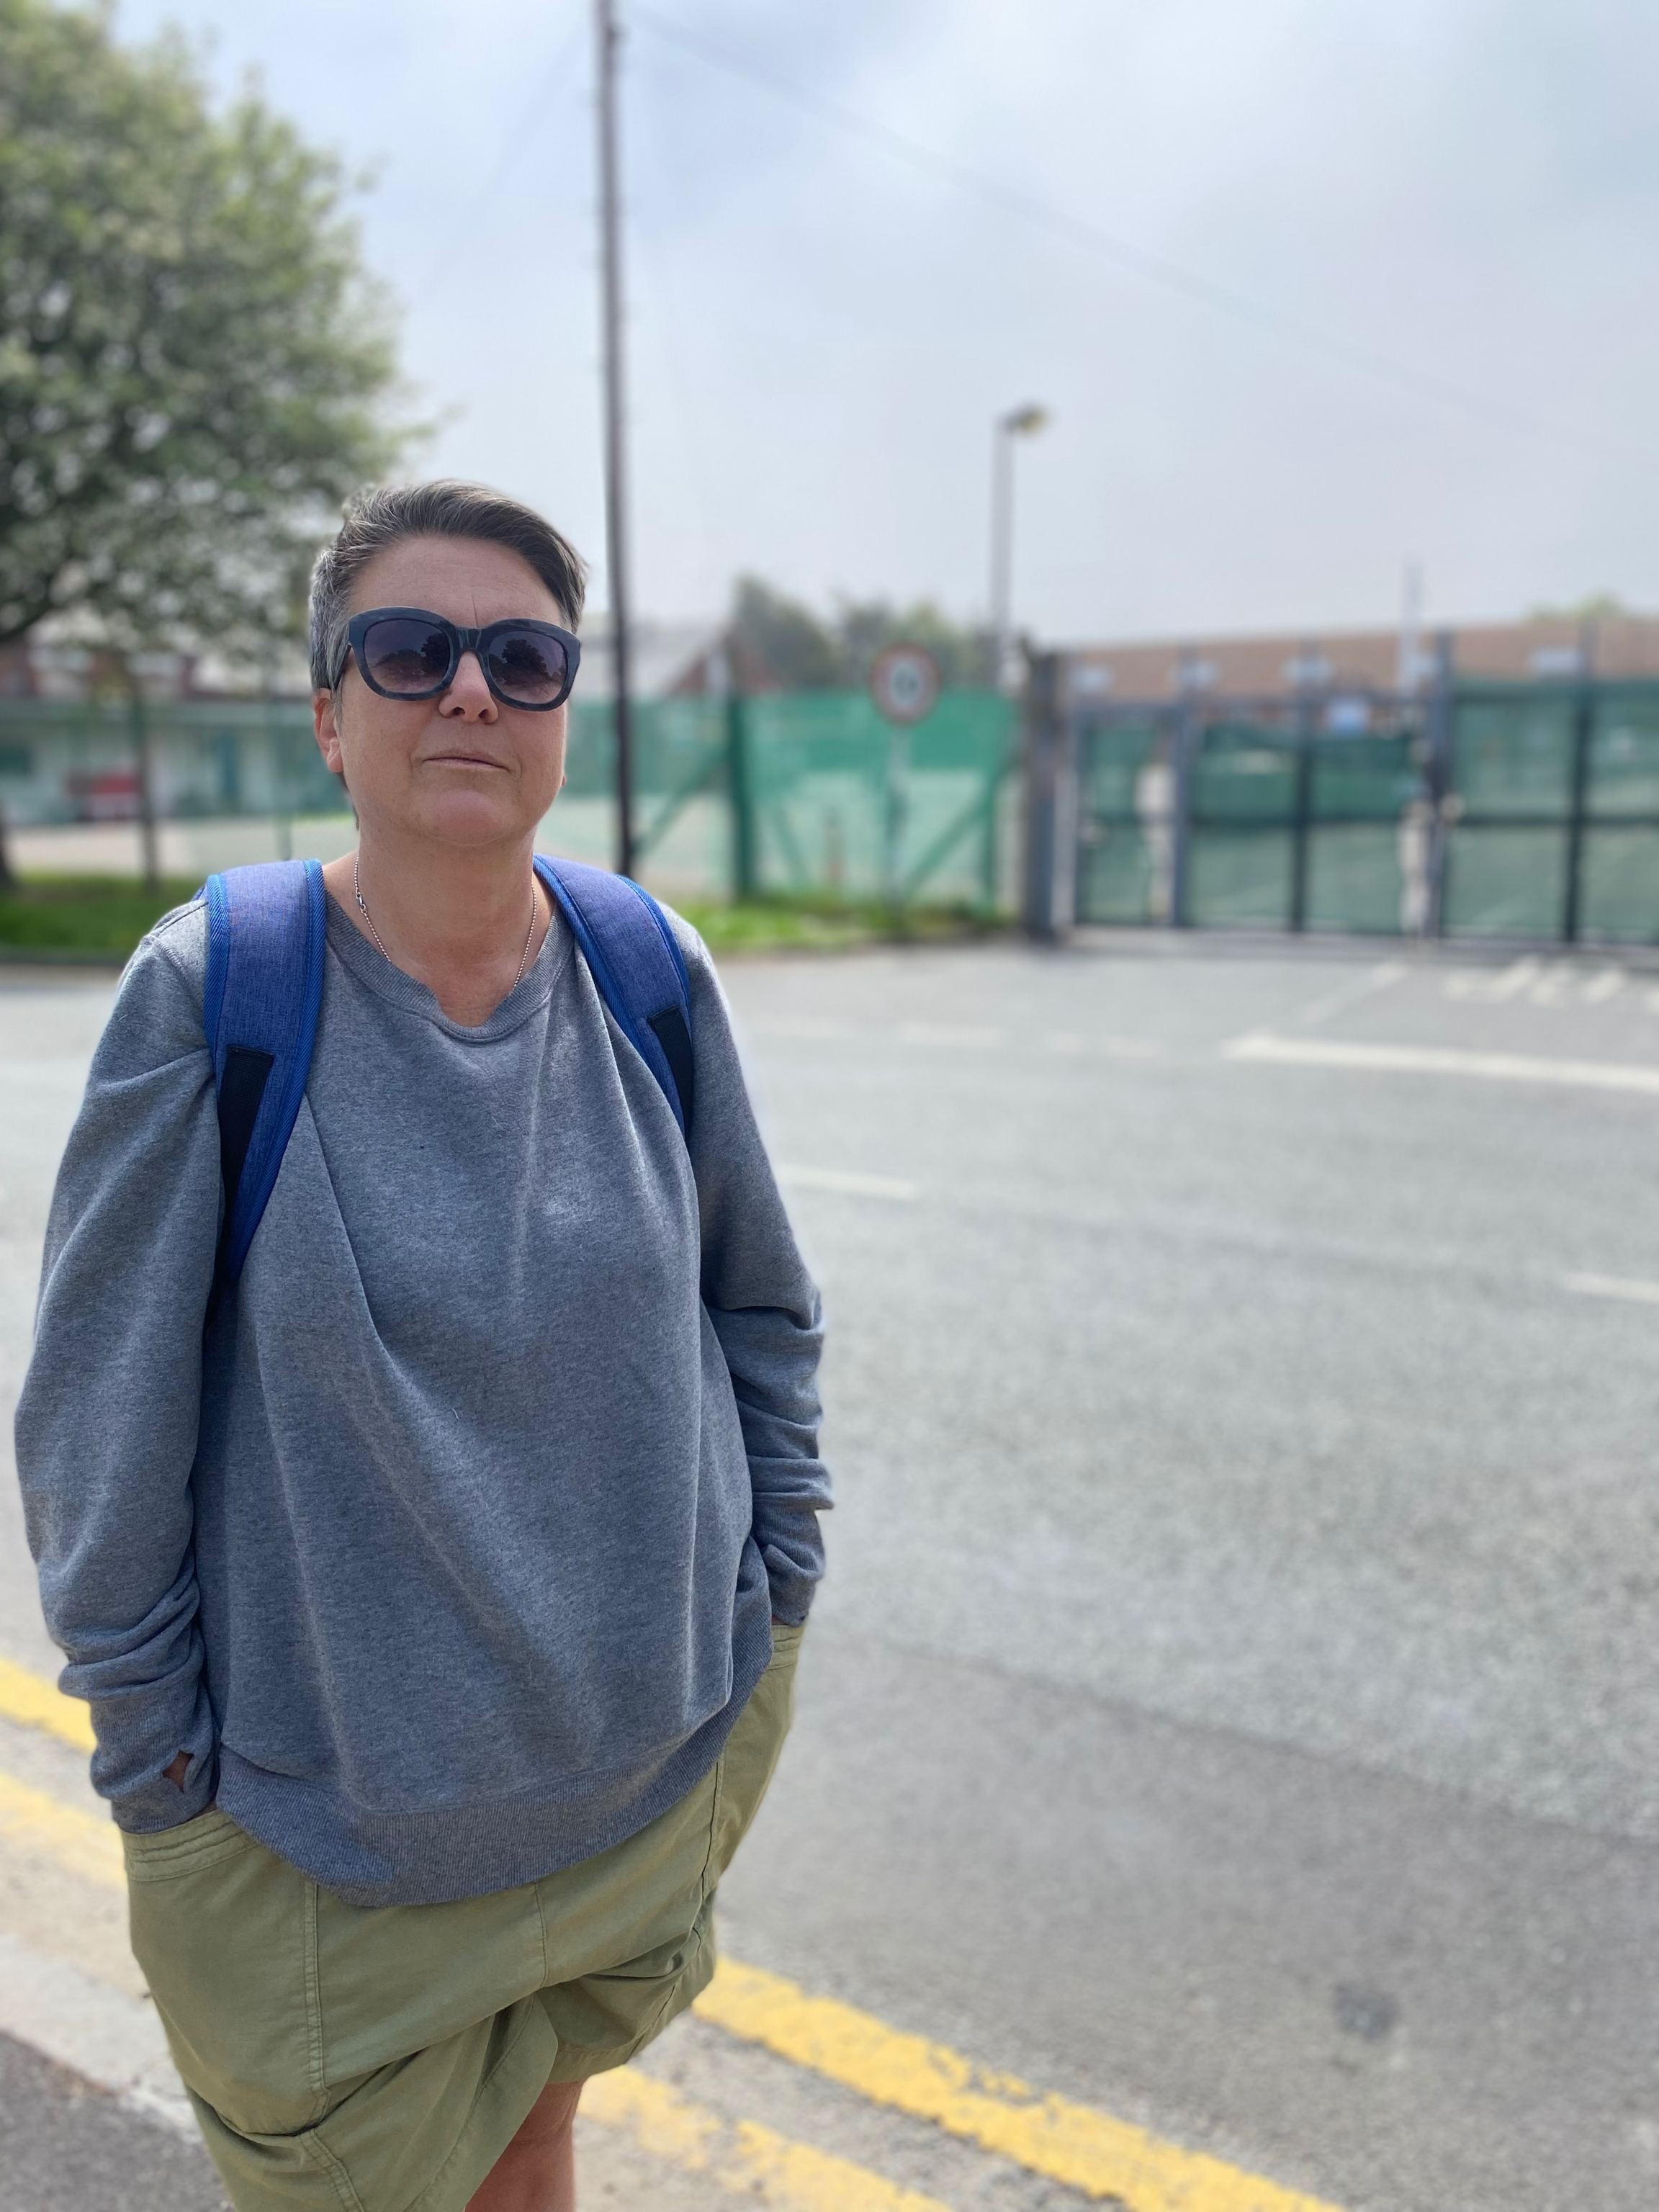 Bridget Chapman from the Kent Refugee Action Network, a local charity, says the Napier barracks in the UK never should've been used to house migrants.